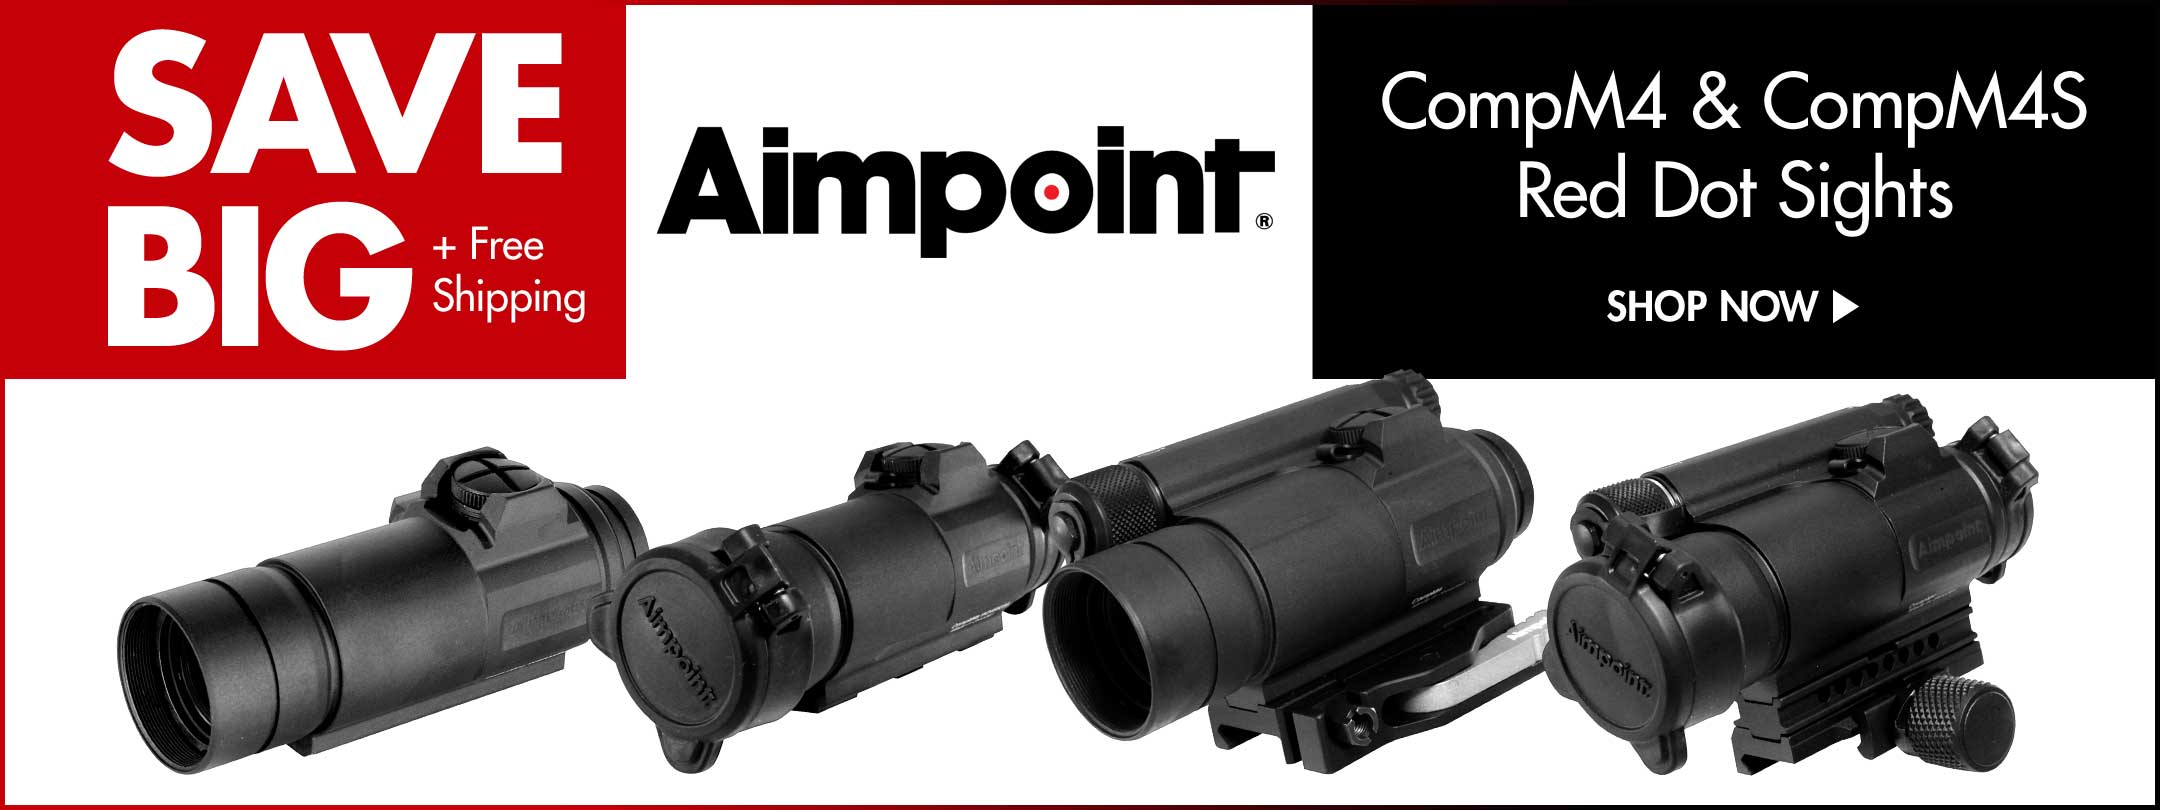 Save Big on Aimpoint Red Dot Sights